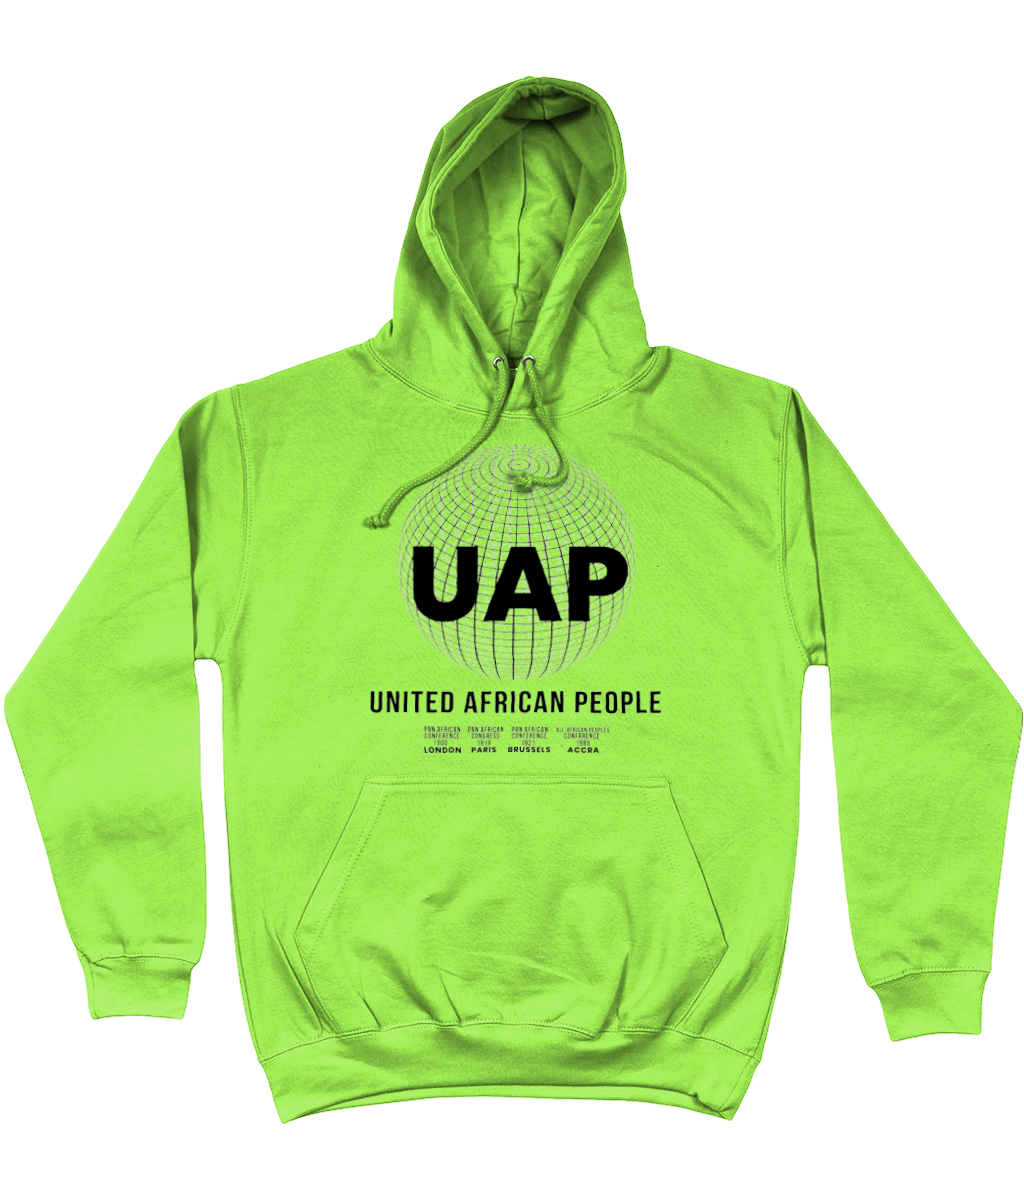 UAP Hoodie - CoolAfricanMerch